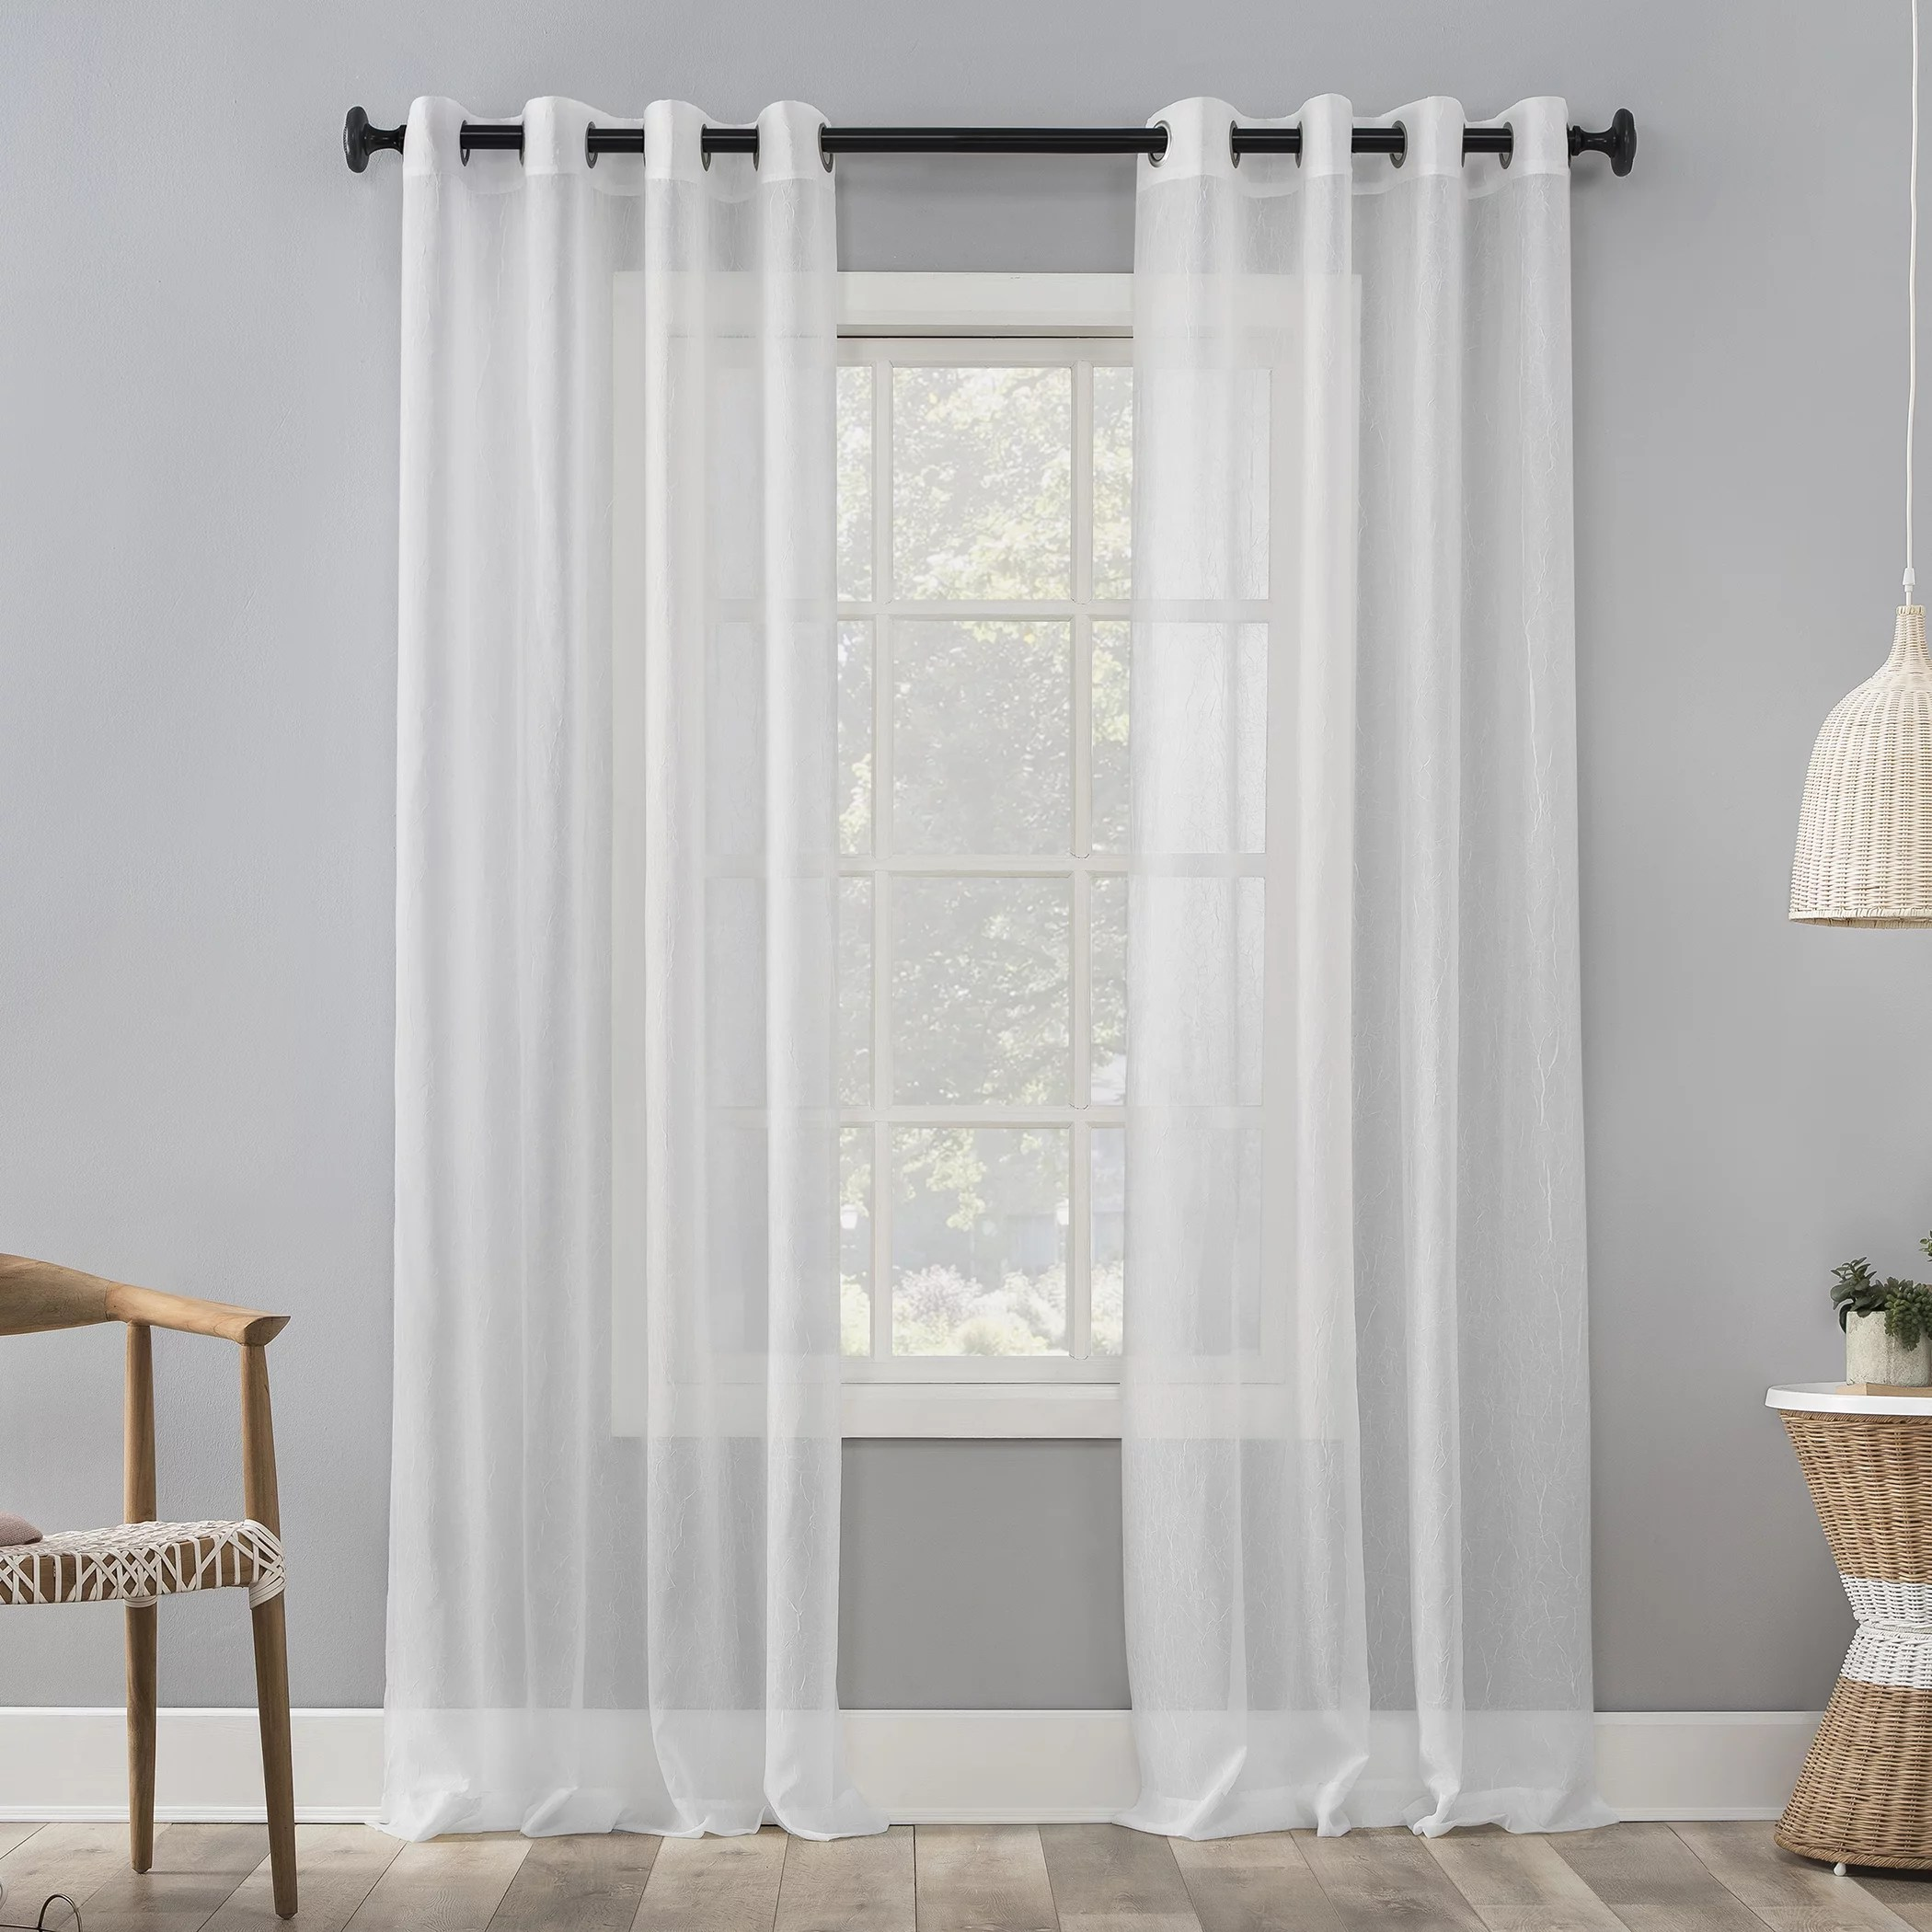 mainstays marjorie crushed sheer voile grommet white curtain panel